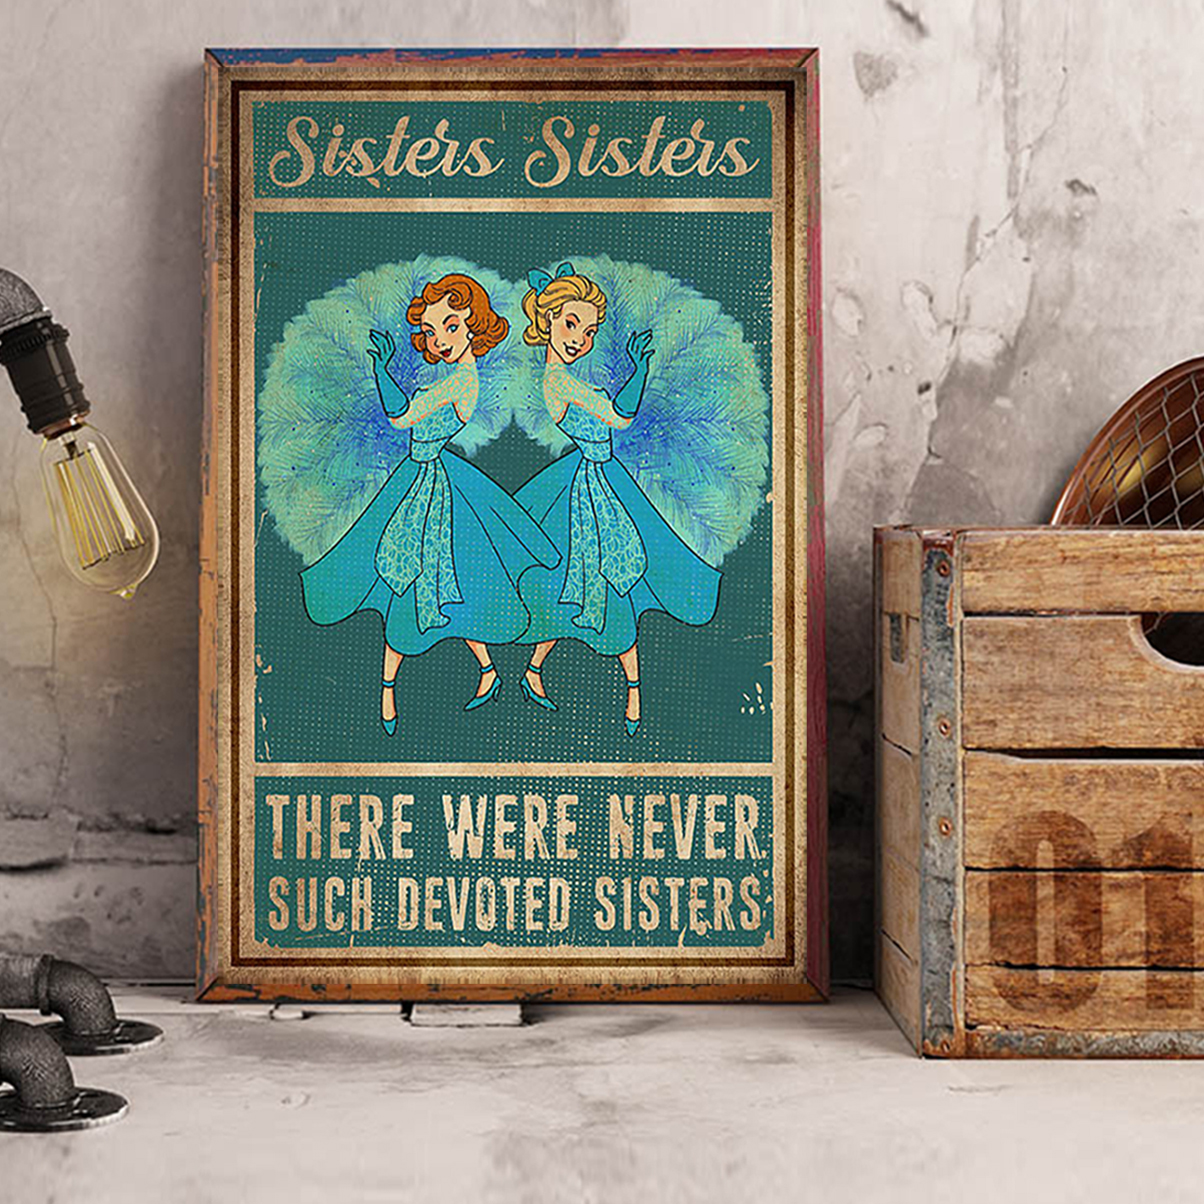 Sisters sisters there were never such devoted sisters poster A3